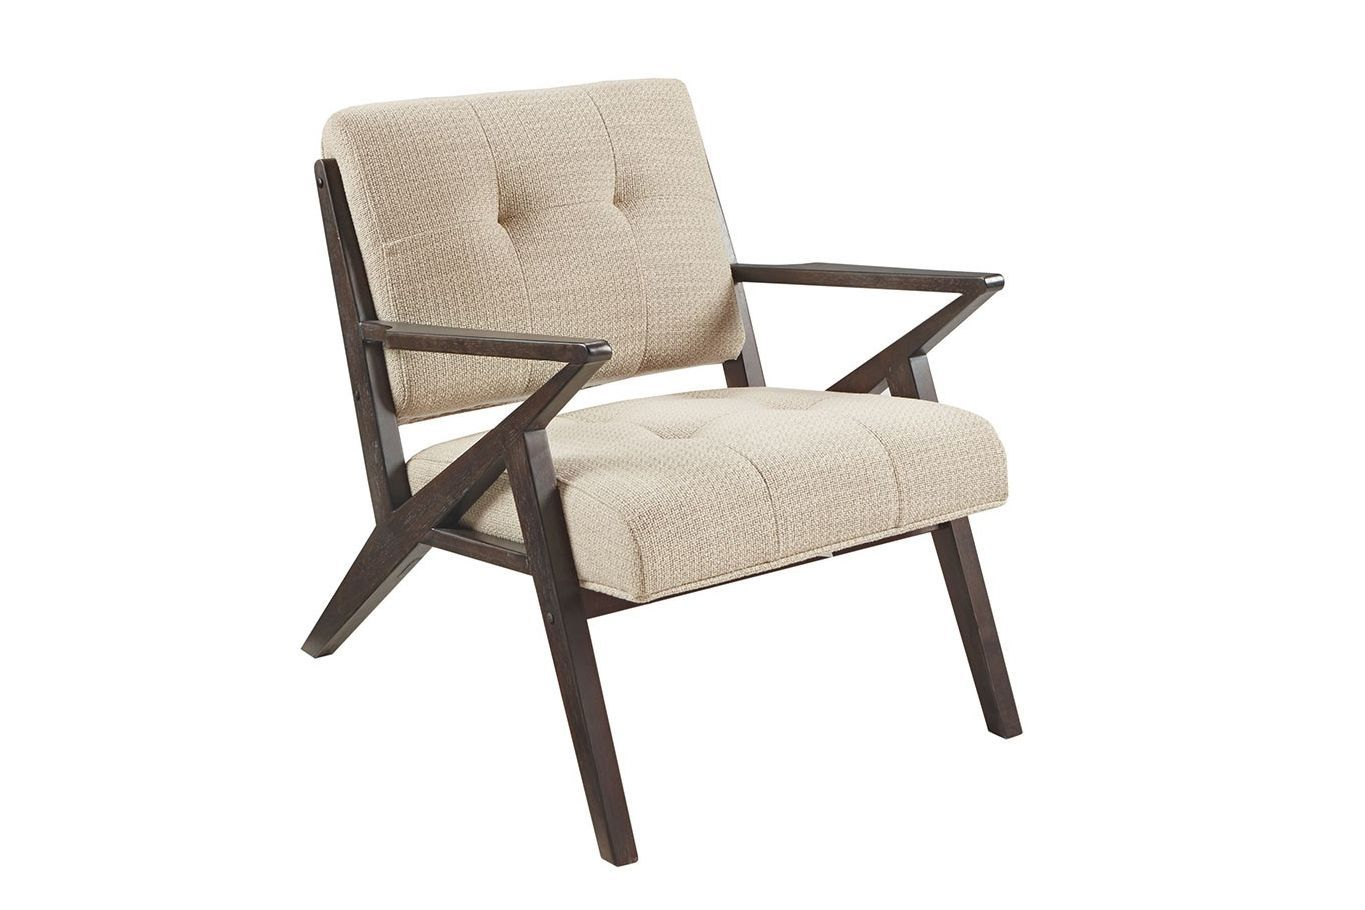 Stupendous Rocket Lounge Chair In Beige By Ink Ivy In 2019 Products Alphanode Cool Chair Designs And Ideas Alphanodeonline